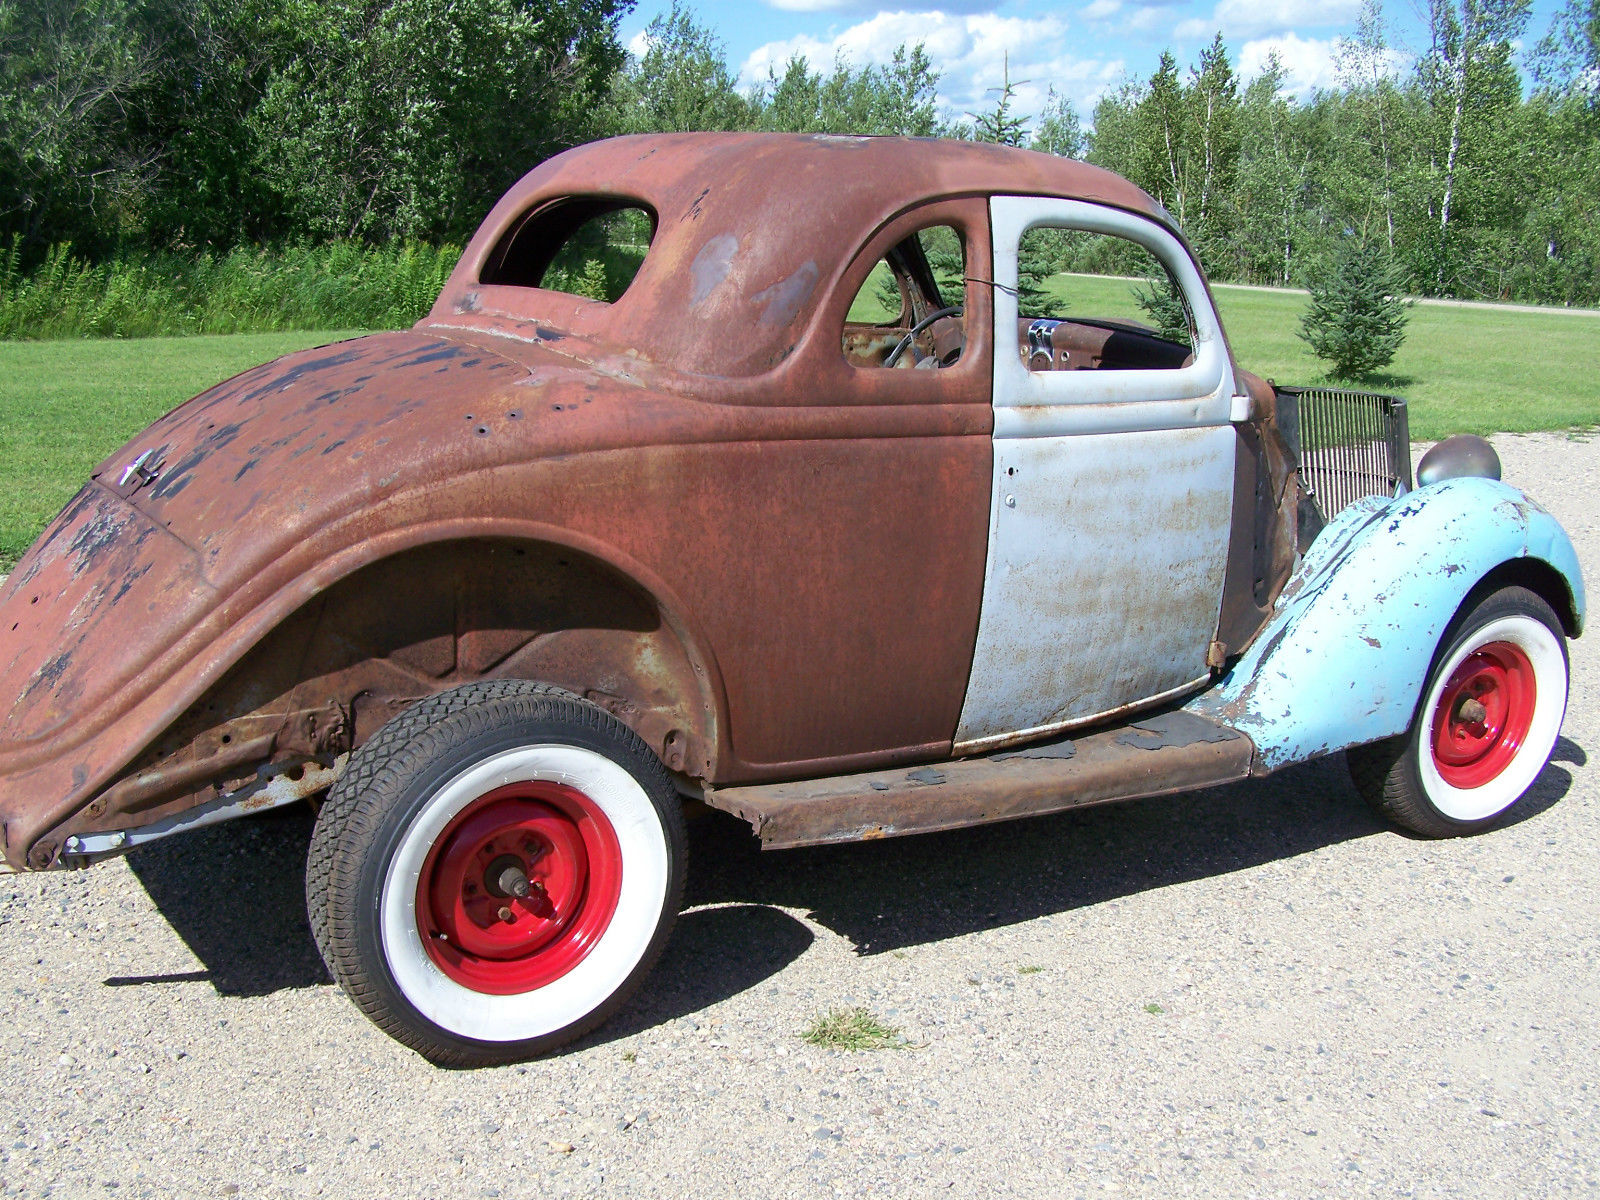 1936 ford 5 window coupe rat rod project car for sale for 1936 ford 5 window coupe for sale